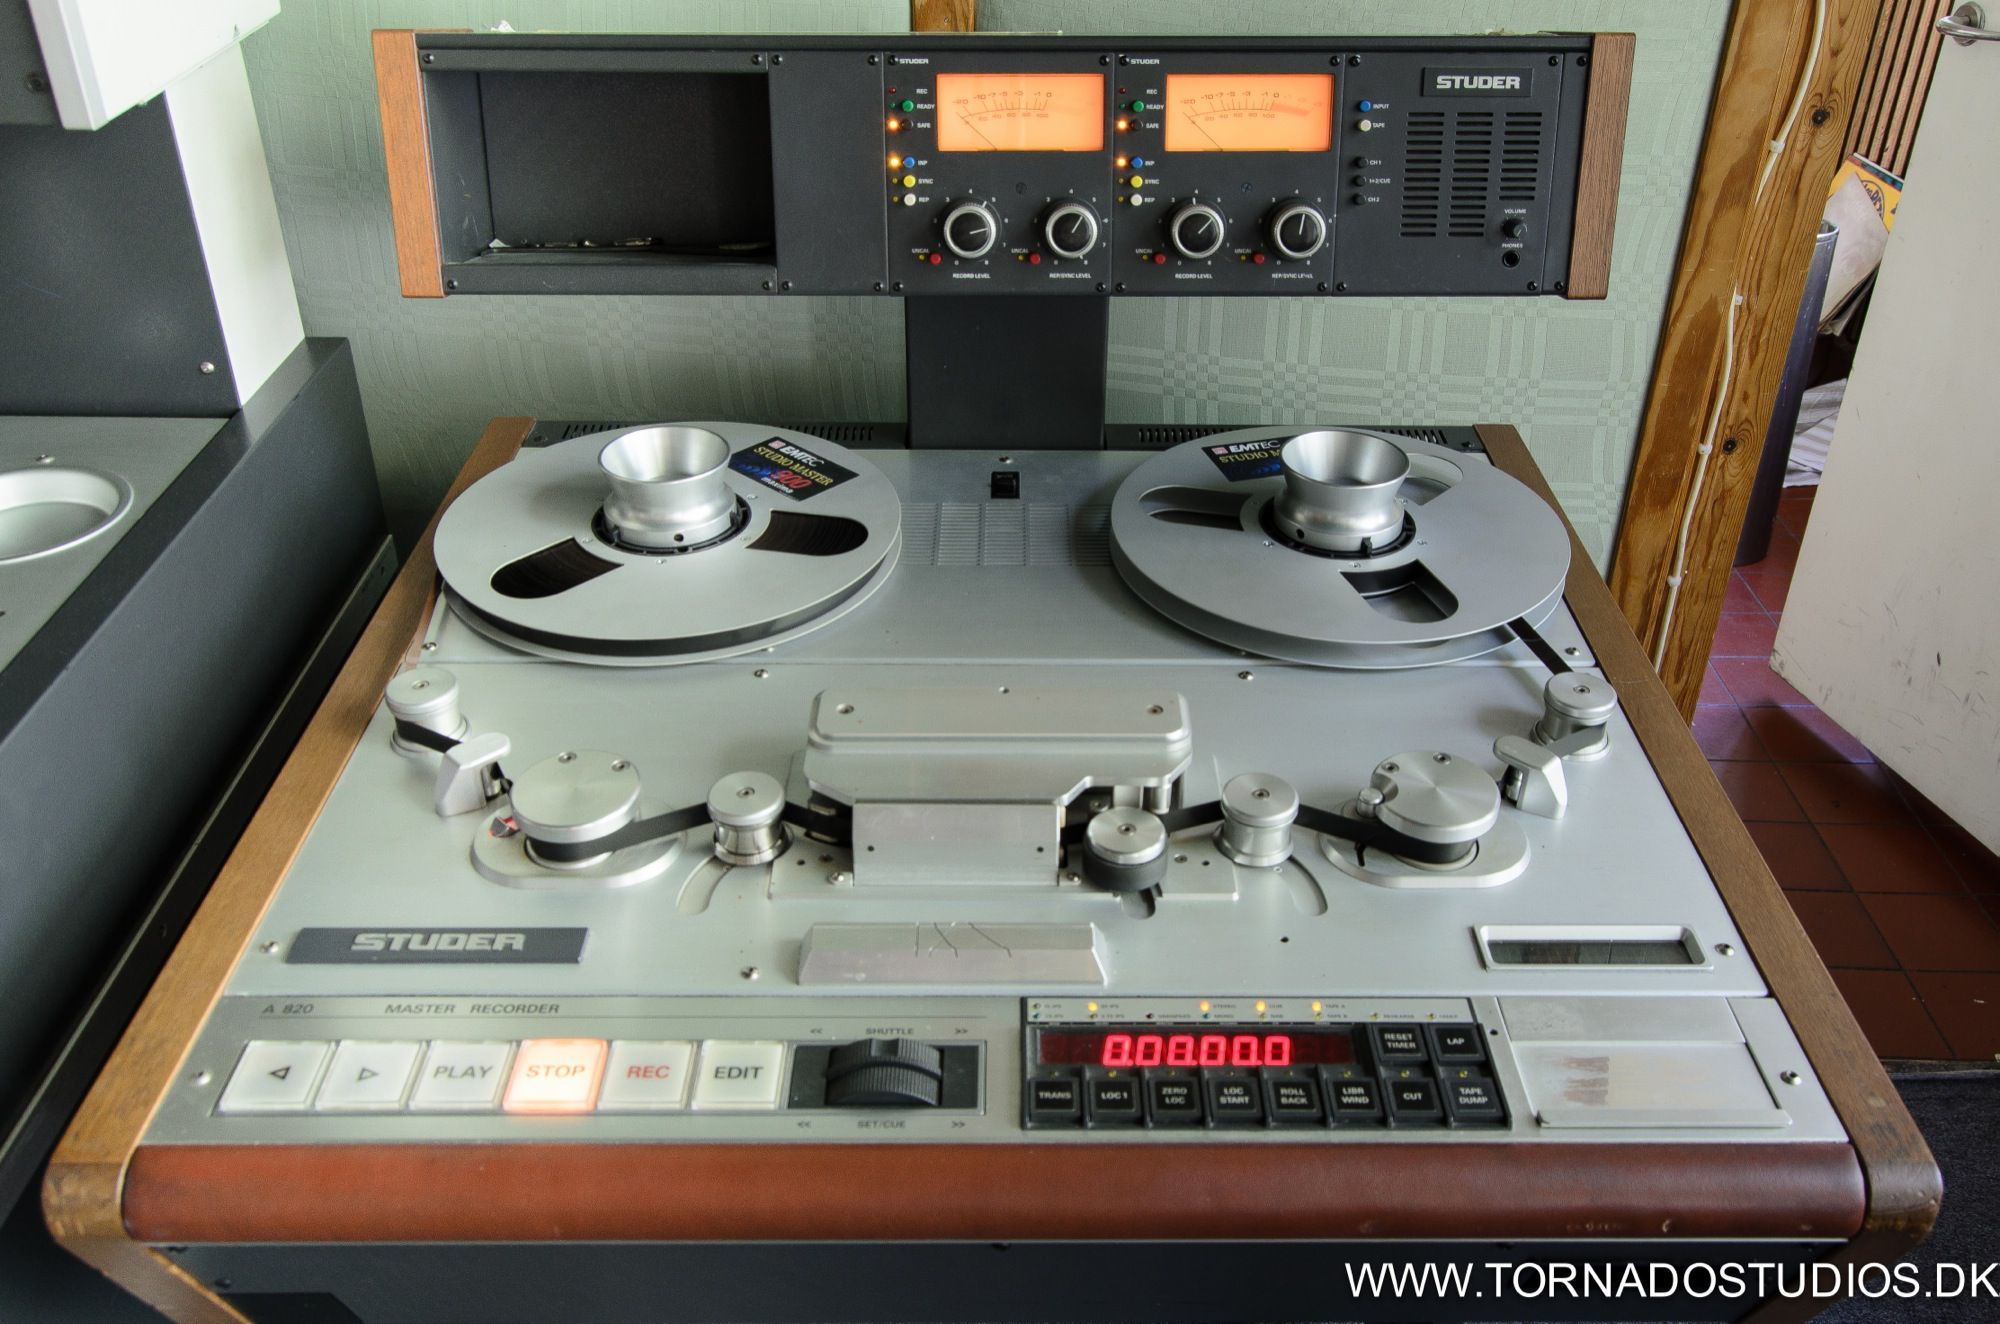 Studer 820 2 track, 1/2 inch analog tape recorder (all speeds)